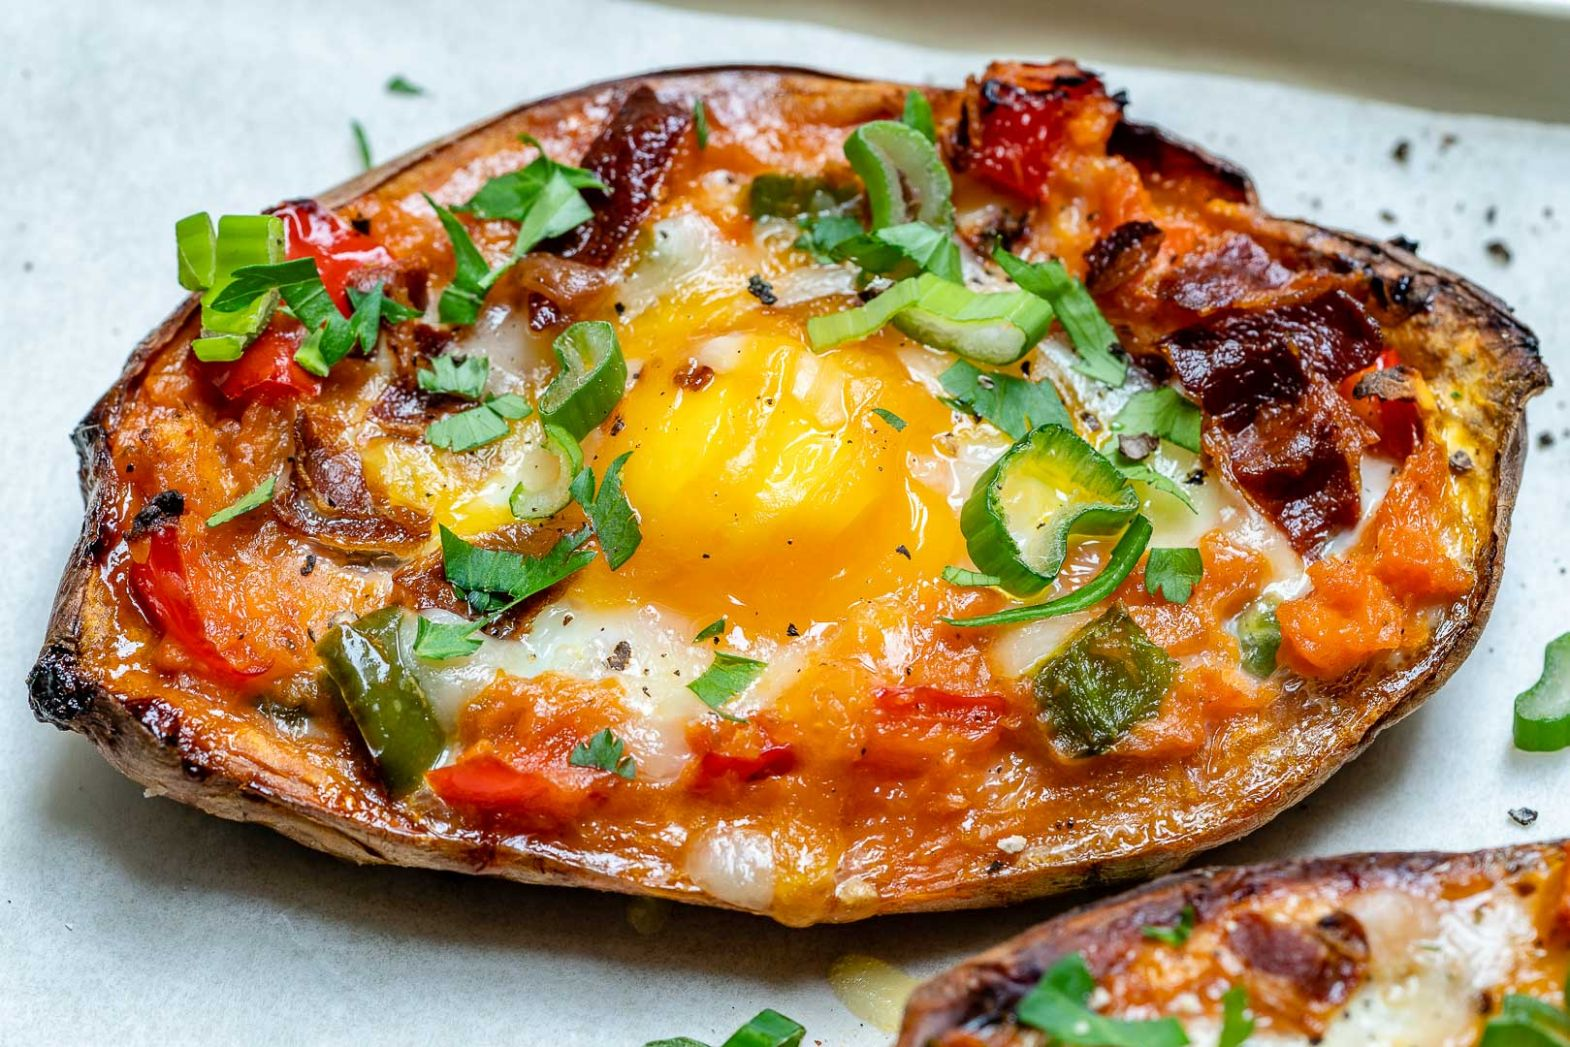 Twice Baked Stuffed Sweet Potatoes with Bacon and Eggs